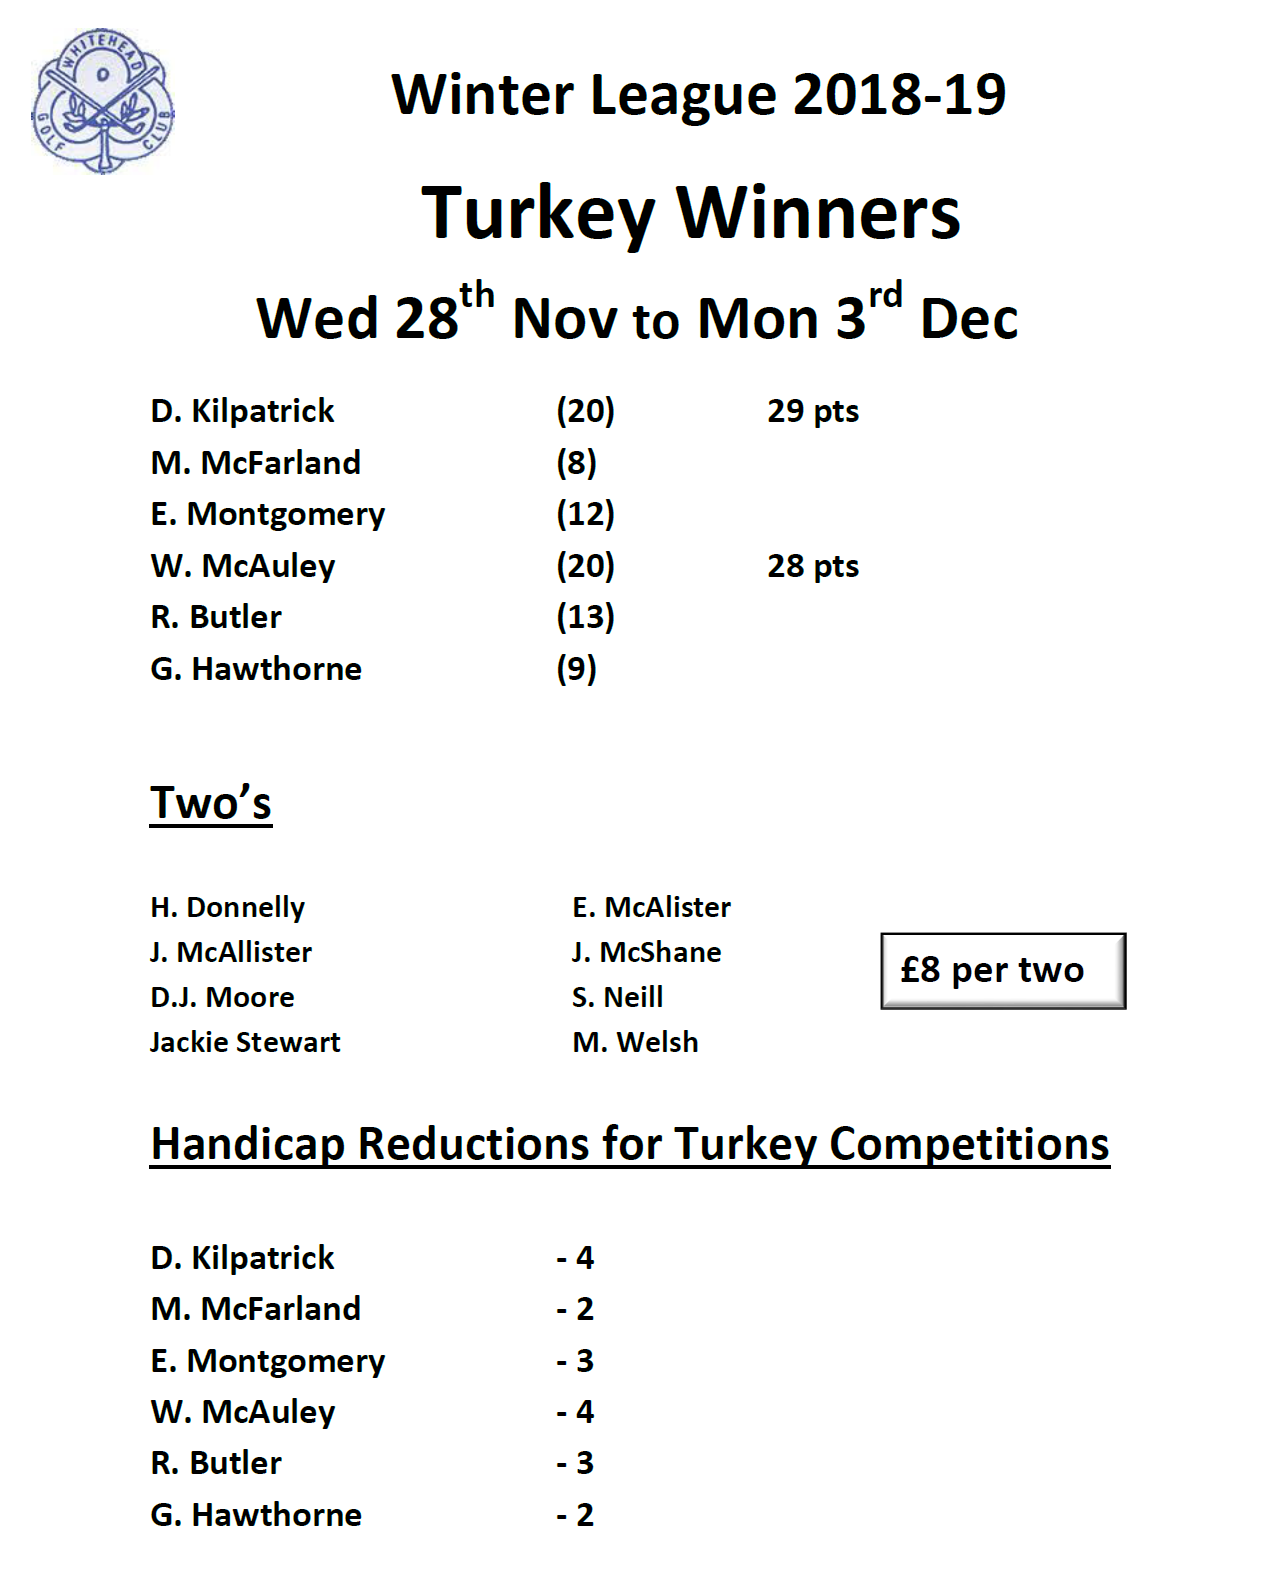 Winter league turkey winners week 6